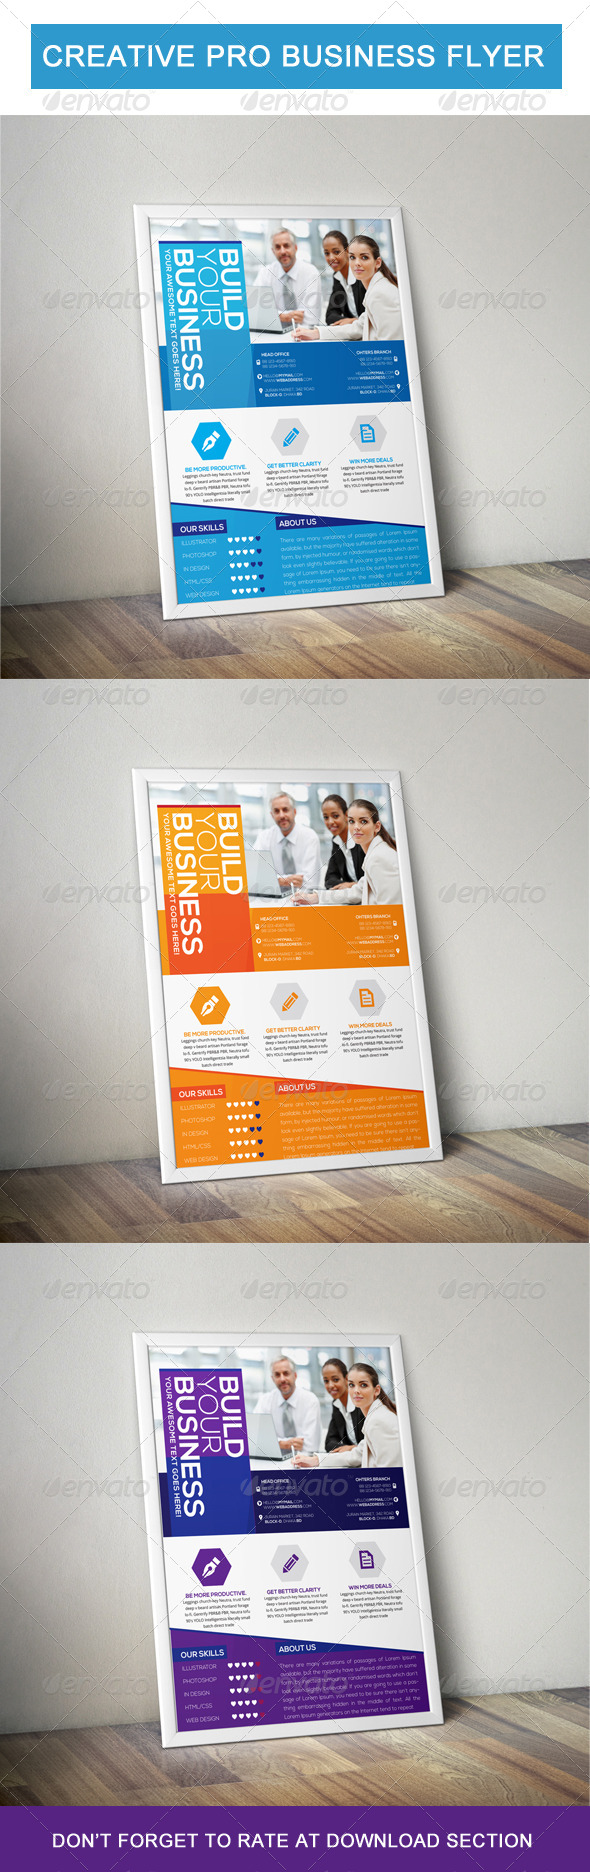 Creative pro business flyer - Corporate Flyers